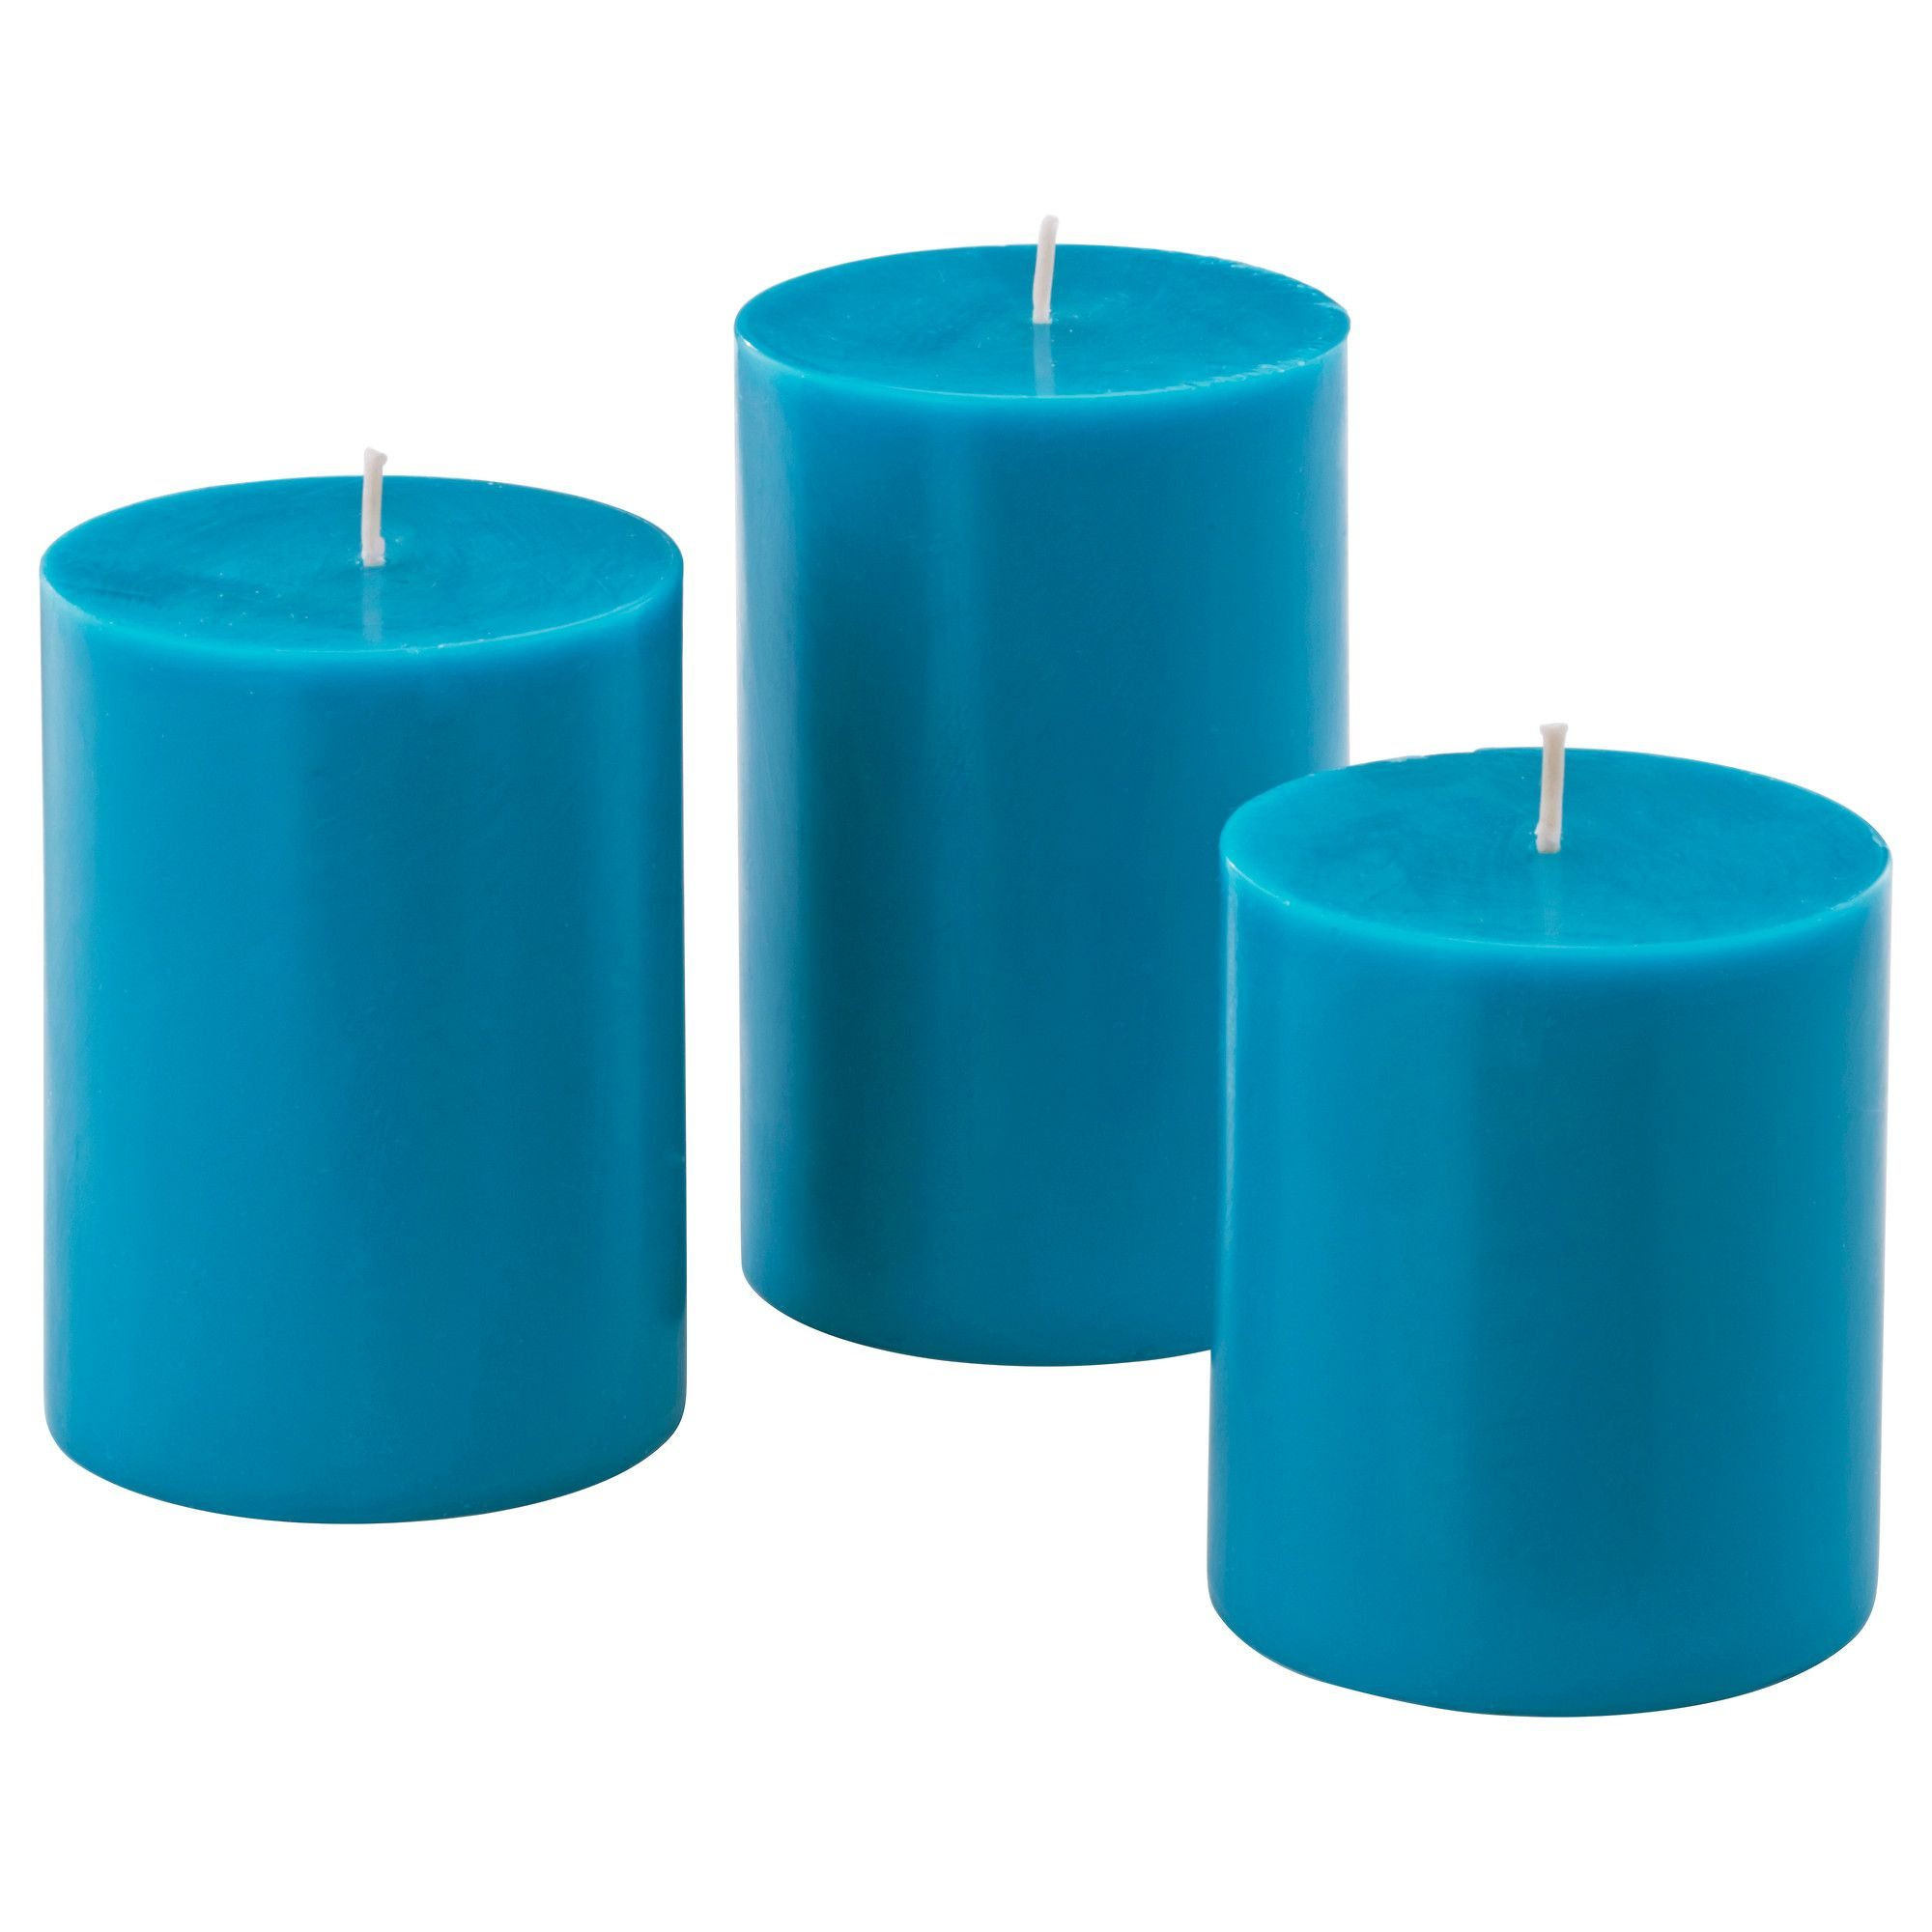 NYKÄR Scented block candle, set of 3 - IKEA | blue | Pinterest ...